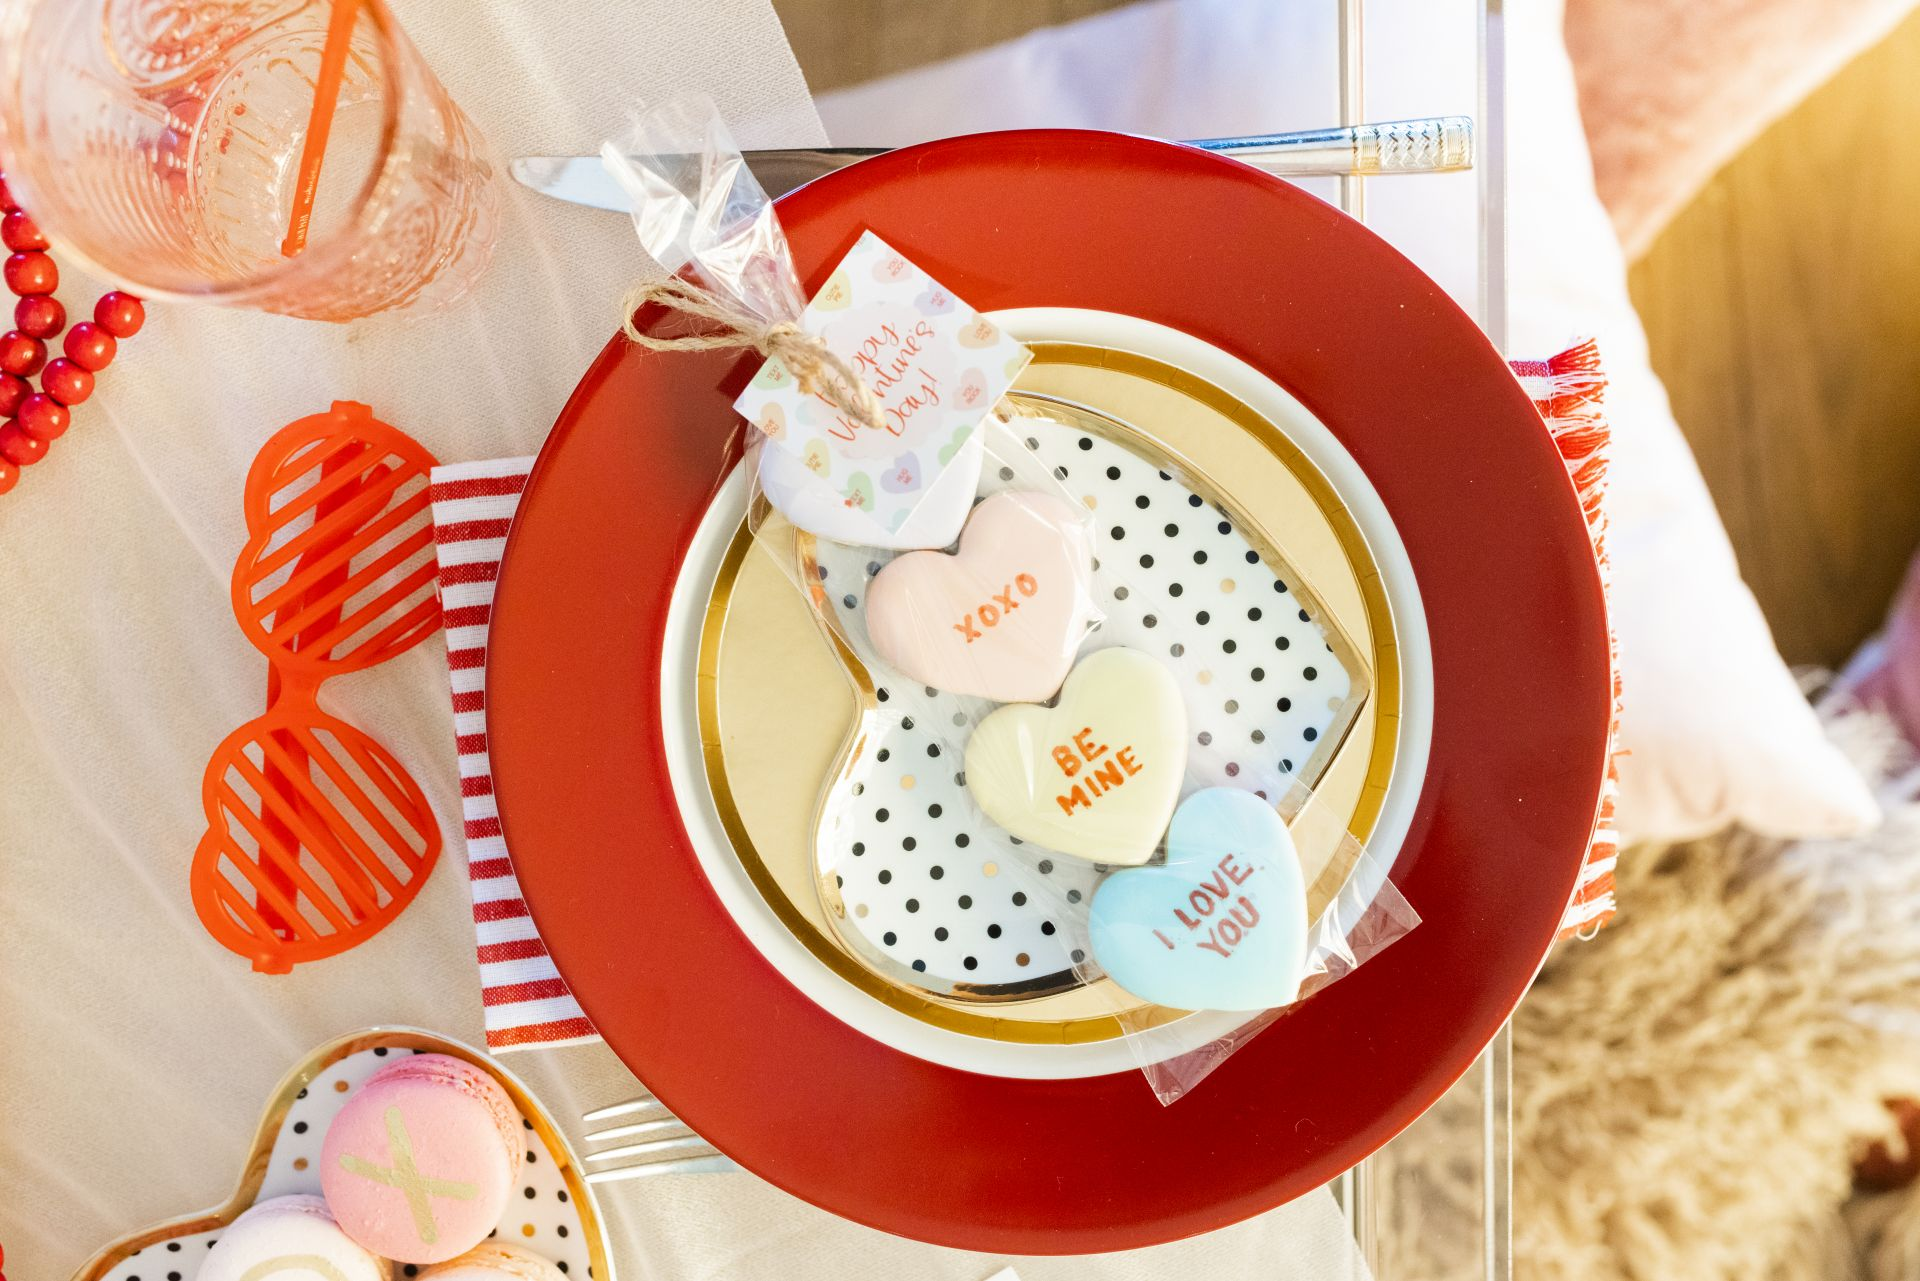 heart place setting, conversation hearts table setting, red and pink table setting, valentine's day table setting, galentine's table setting, red and pink party, intimate table setting ideas, girls night table setting, hearts table settings, sweets table decor ideas, pink and red party theme, girly party theme decor, love party theme decor, valentines day party ideas, valentines day party ideas for adults, Red Soles and Red Wine